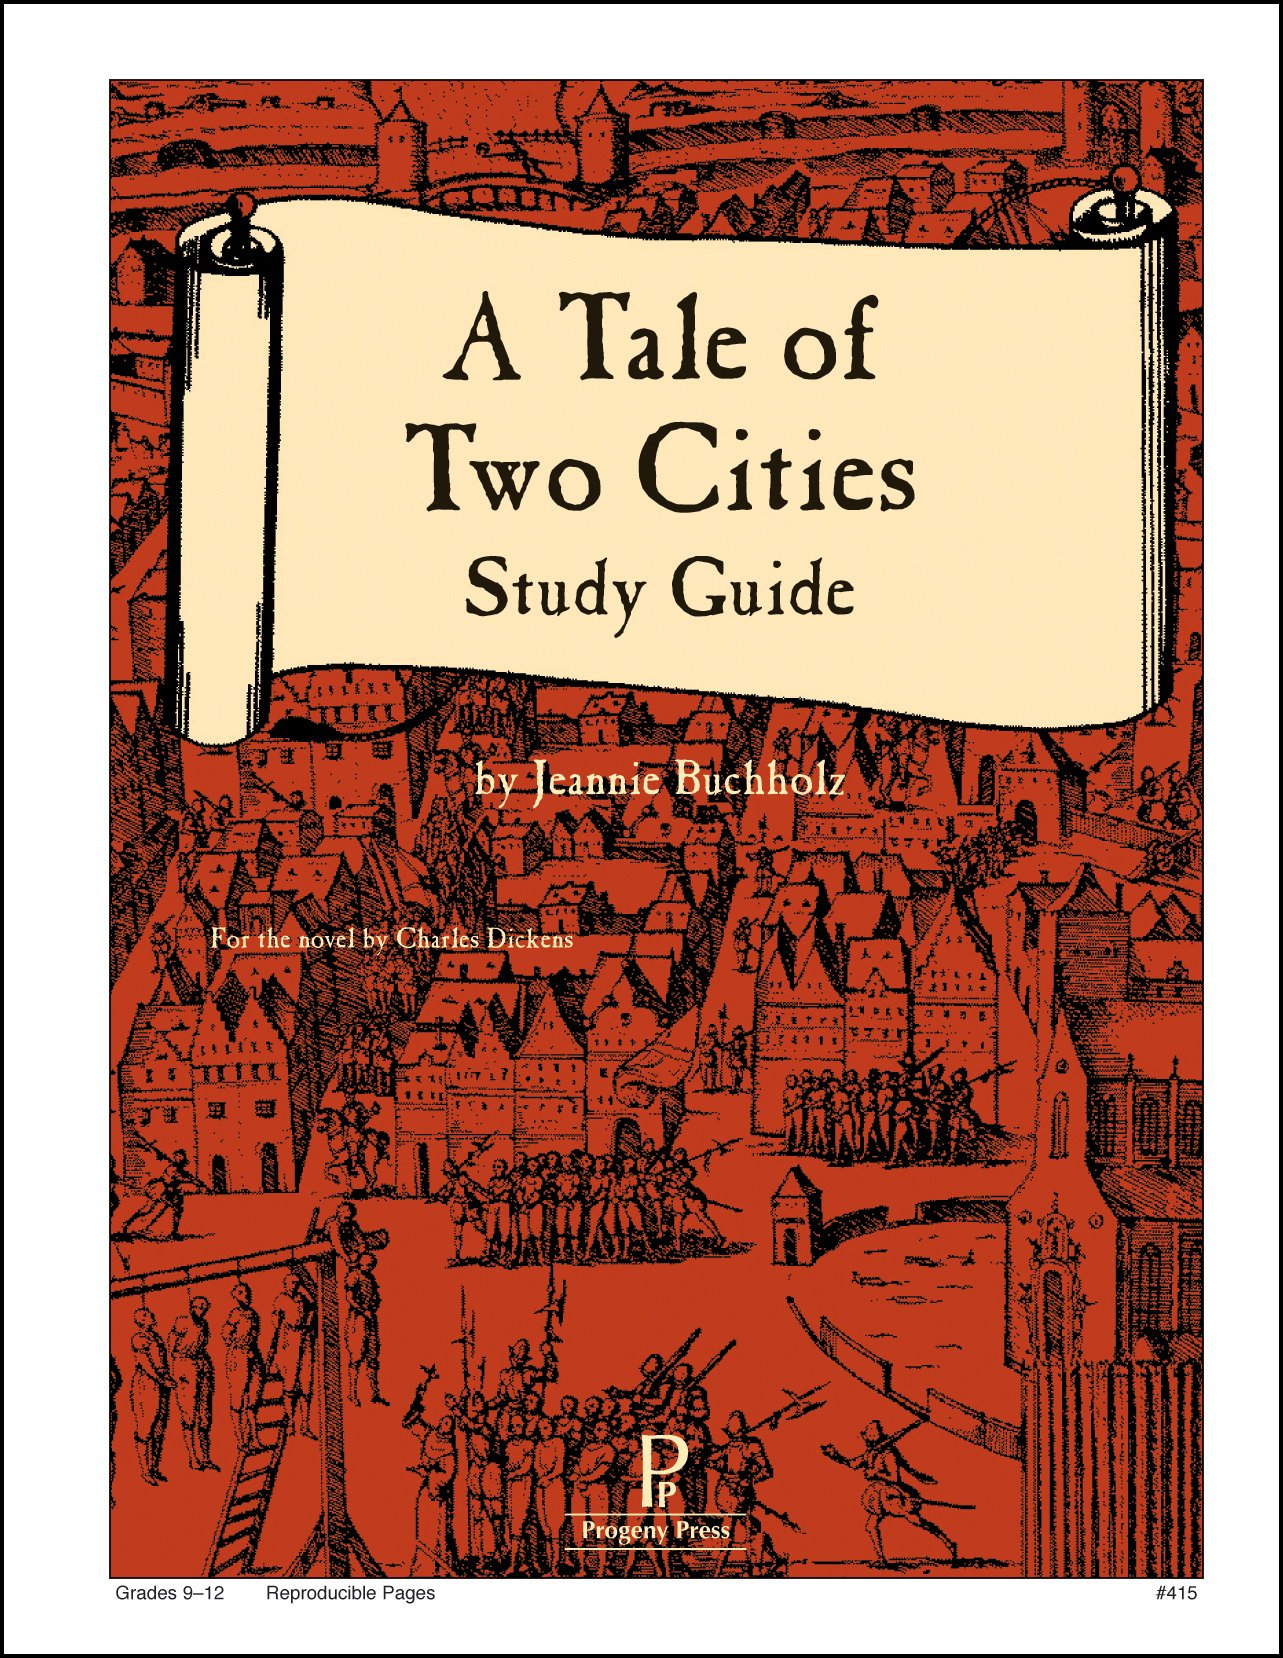 A Tale of Two Cities Study Guide: Jeannie Buchholz: 9781586093846:  Amazon.com: Books